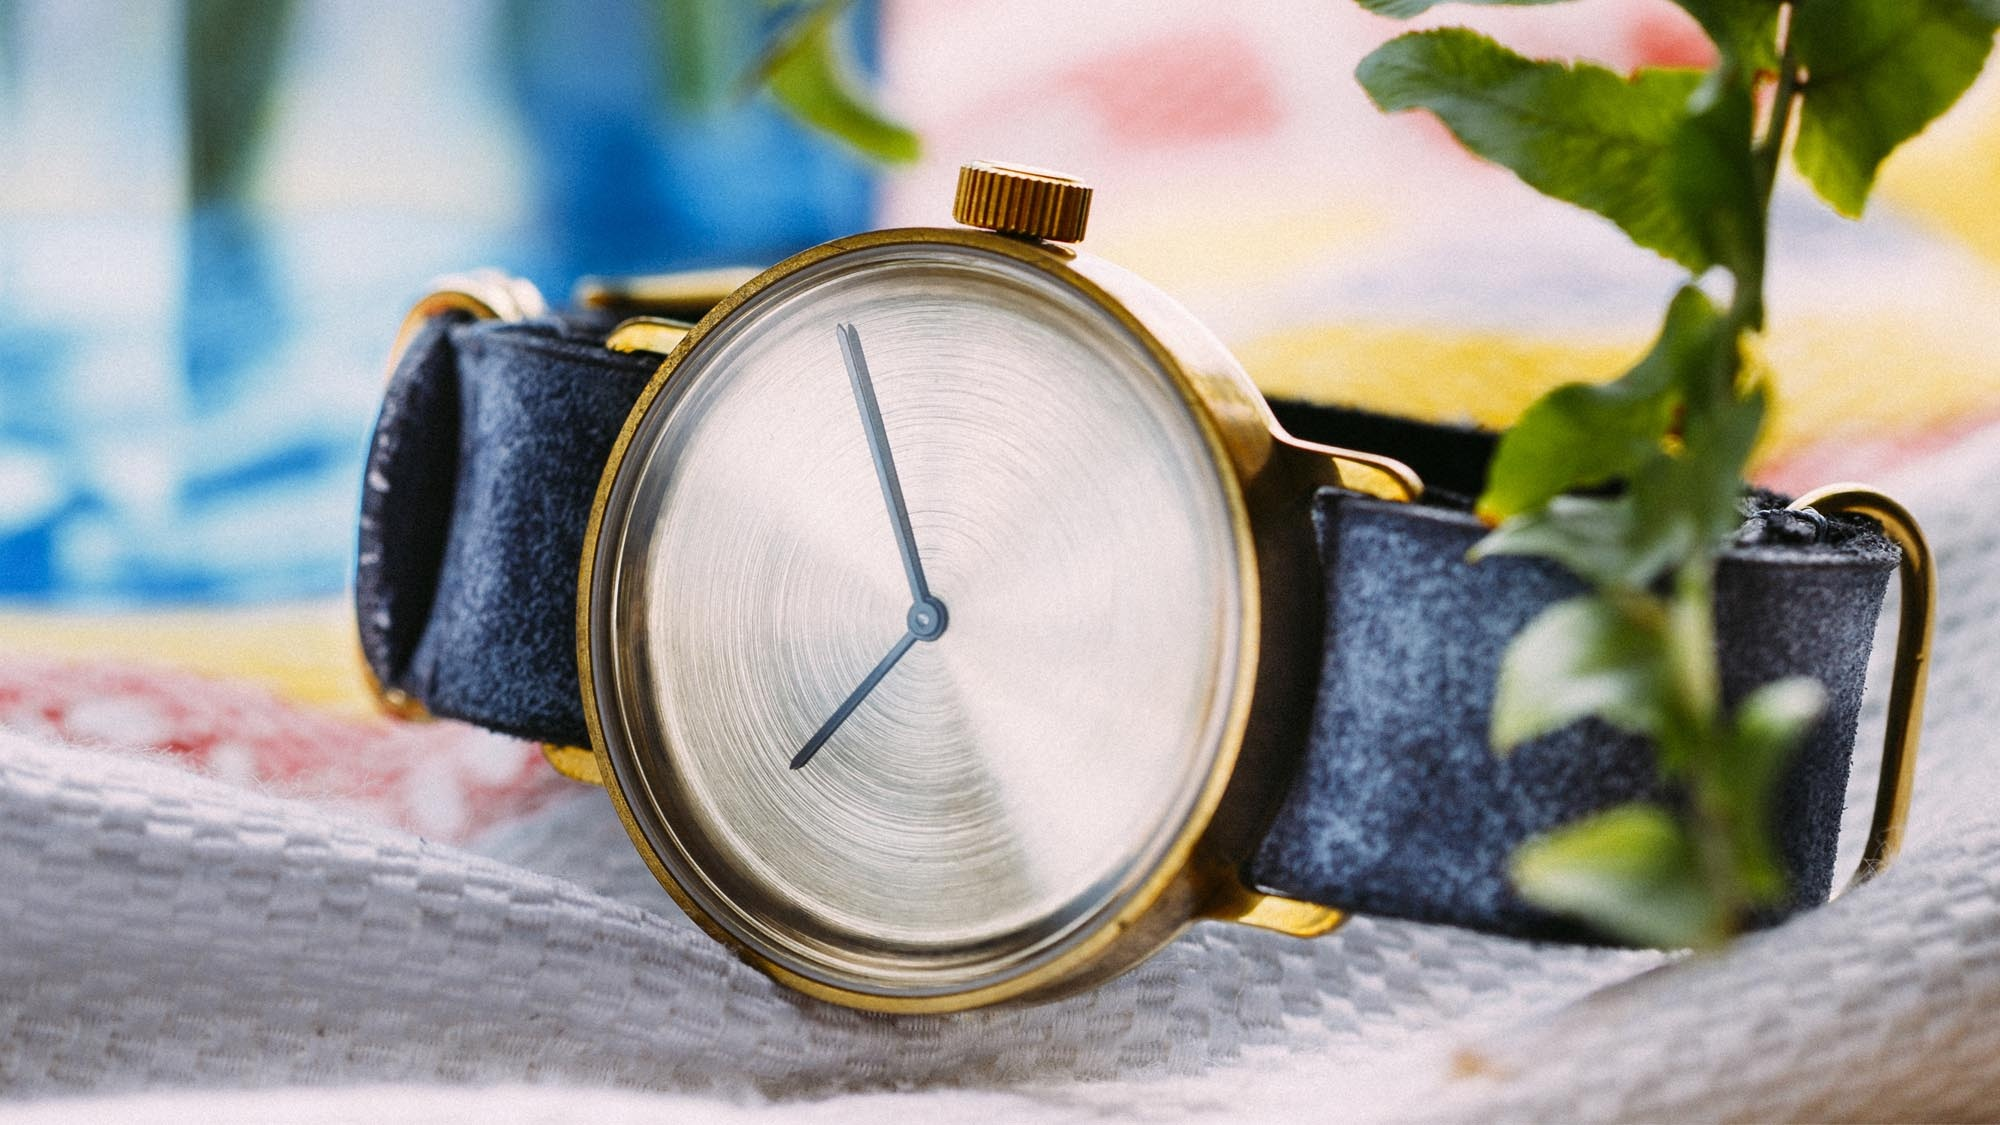 Watch 1972 with leather strap